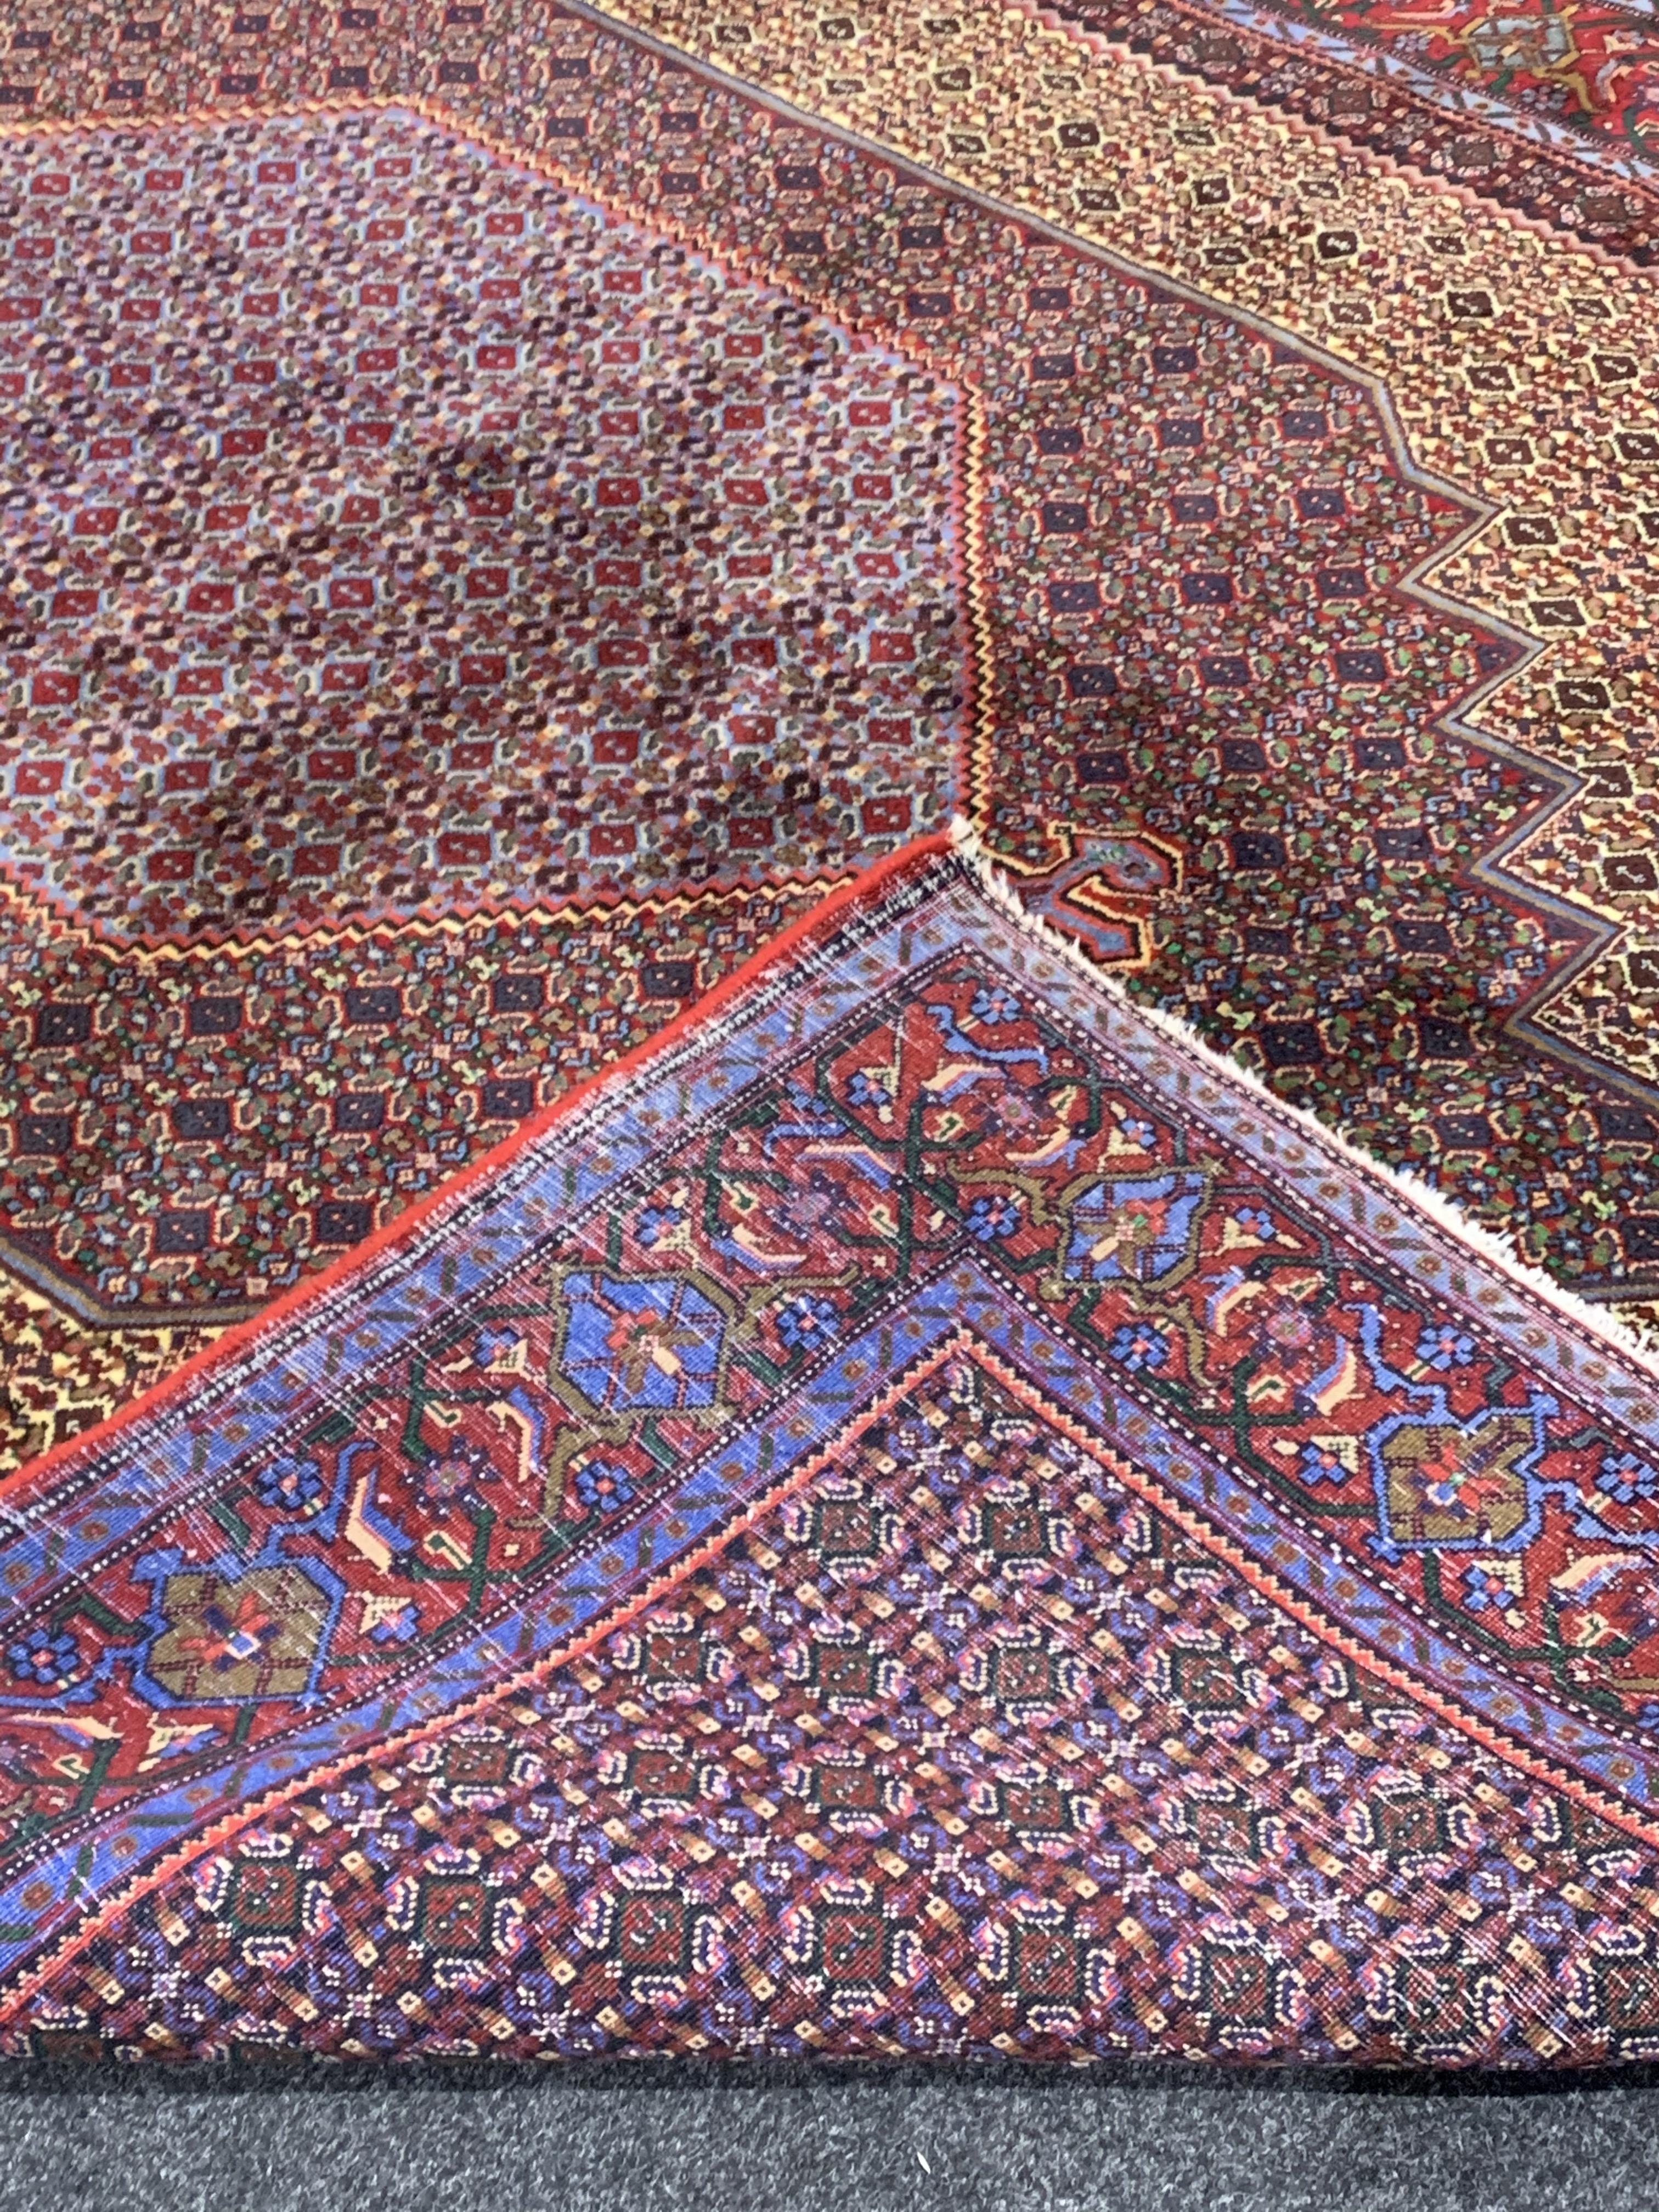 Fine Persian Senneh rug, profusely decorated with Herati motifs, multiple lozenge fields, stylised - Image 3 of 4